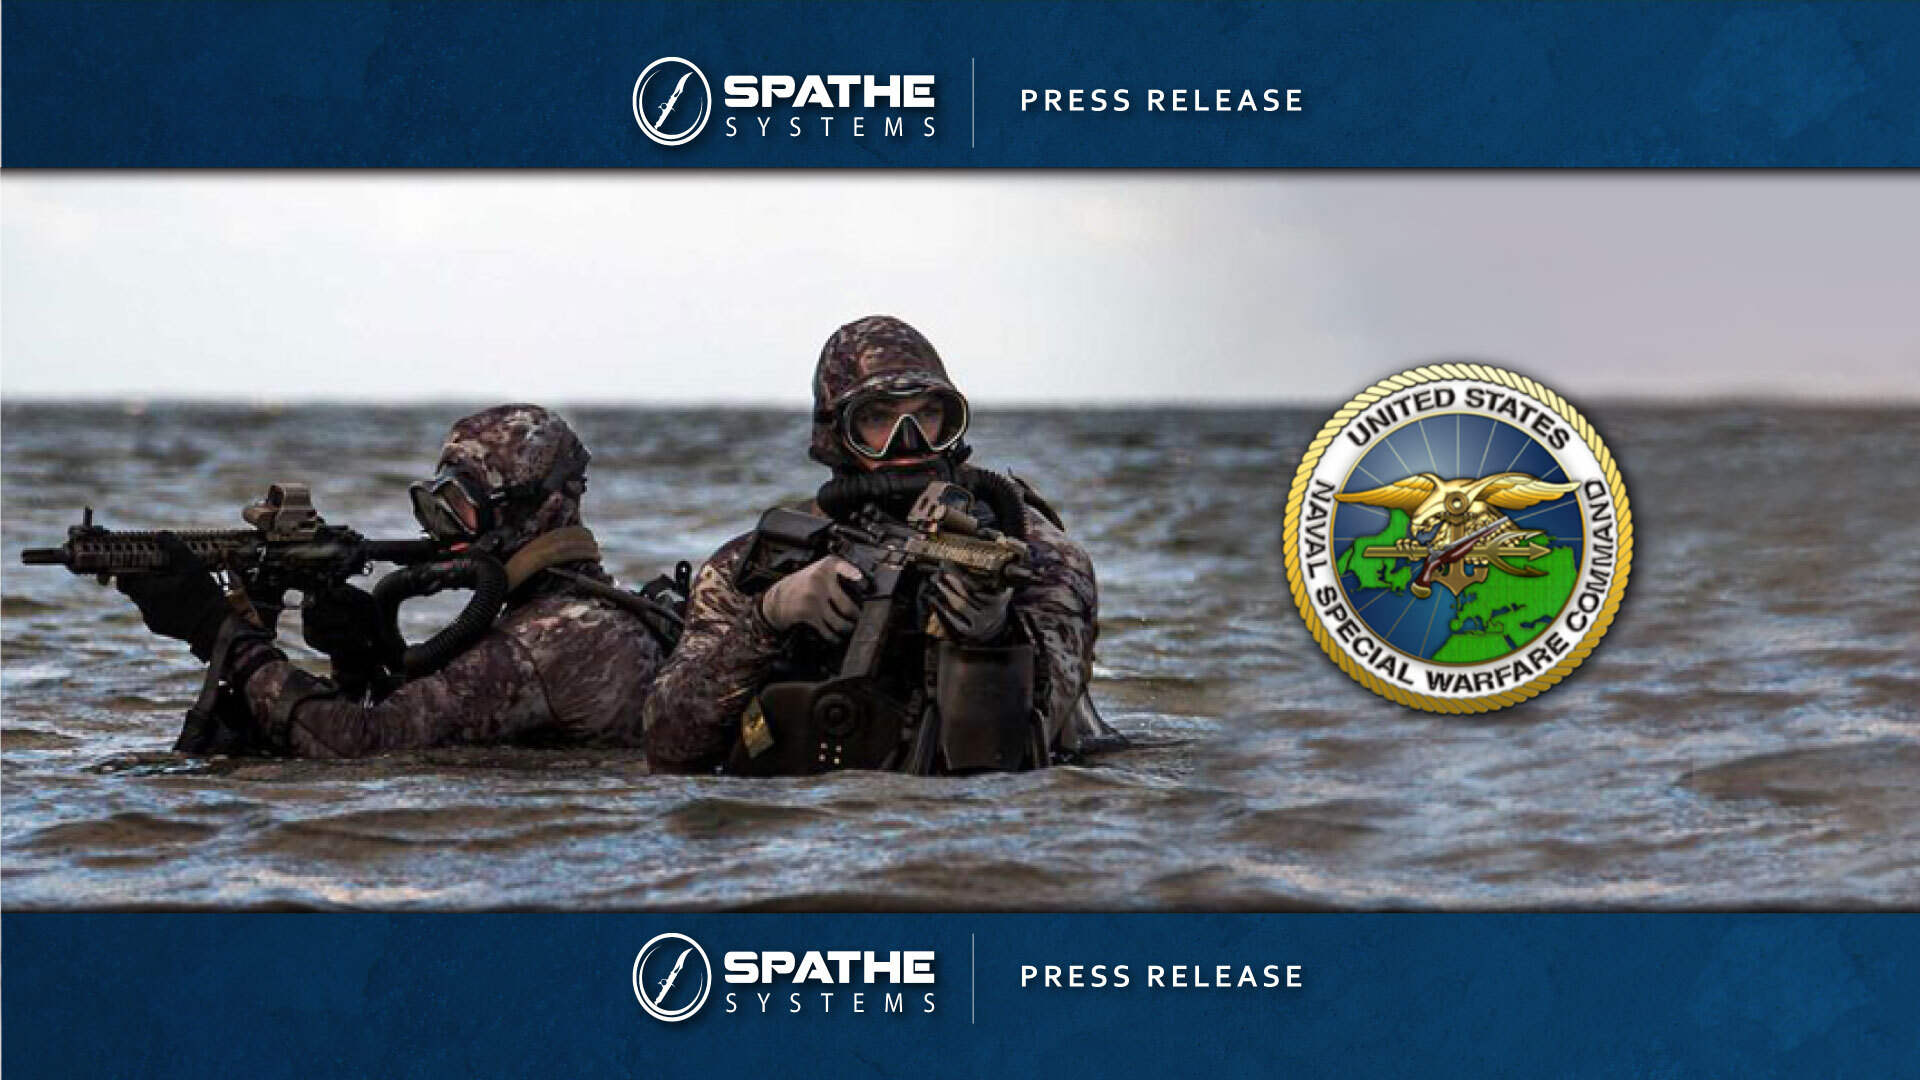 SPATHE SYSTEMS (SPATHE) WINS MARITIME SPECIAL OPERATIONS SUPPORT (M-SOFS) TASK ORDER FOR NAVAL SPECIAL WARFARE COMMAND (NSWC) PROPERTY MANAGEMENT OFFICE PROGRAMS LOGISTICS SUPPORT.